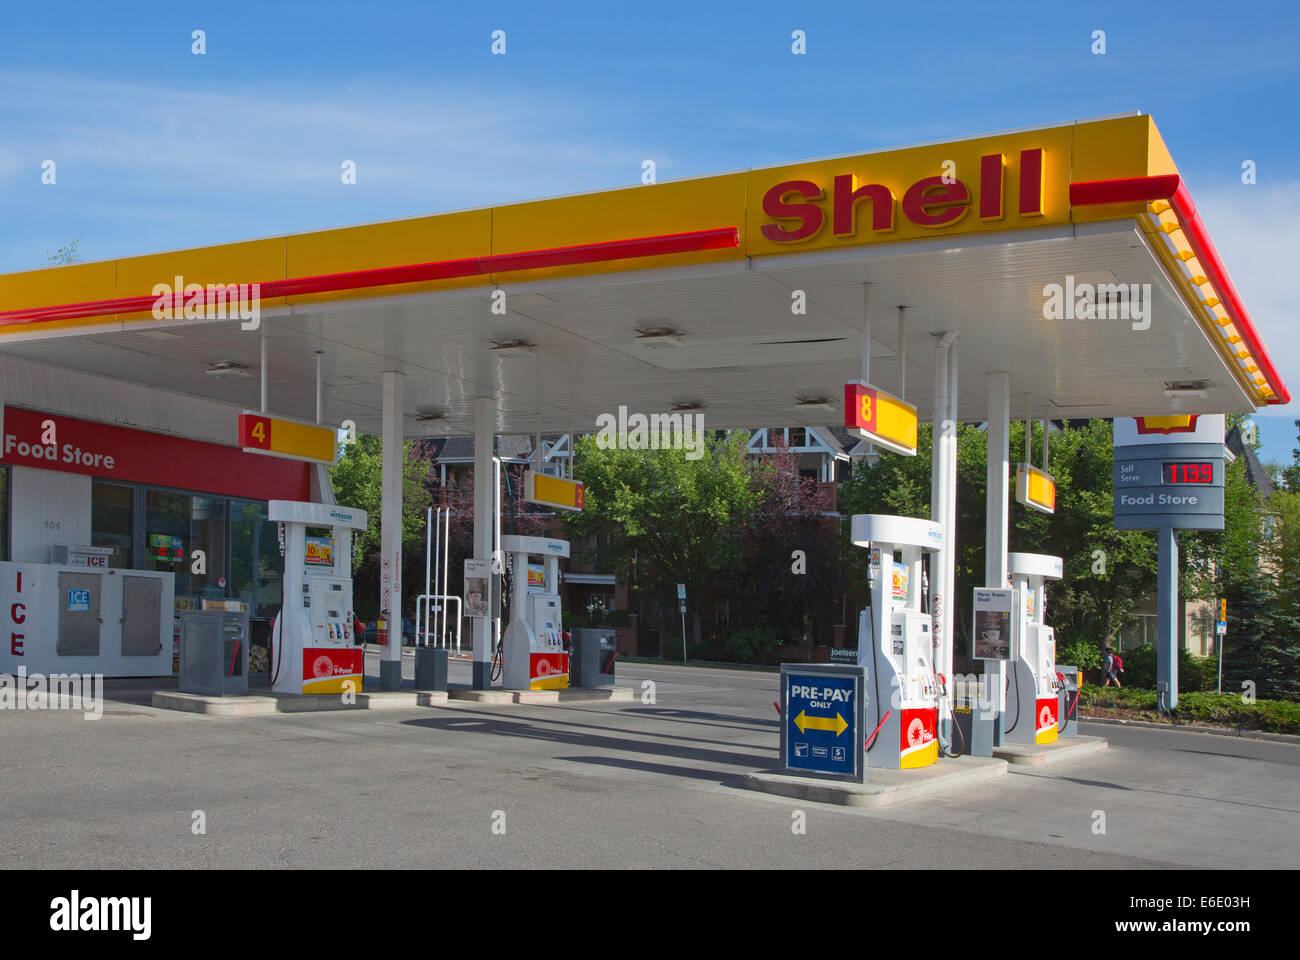 Shell Gas Station Near My Location >> Shell service station with sign showing the price per